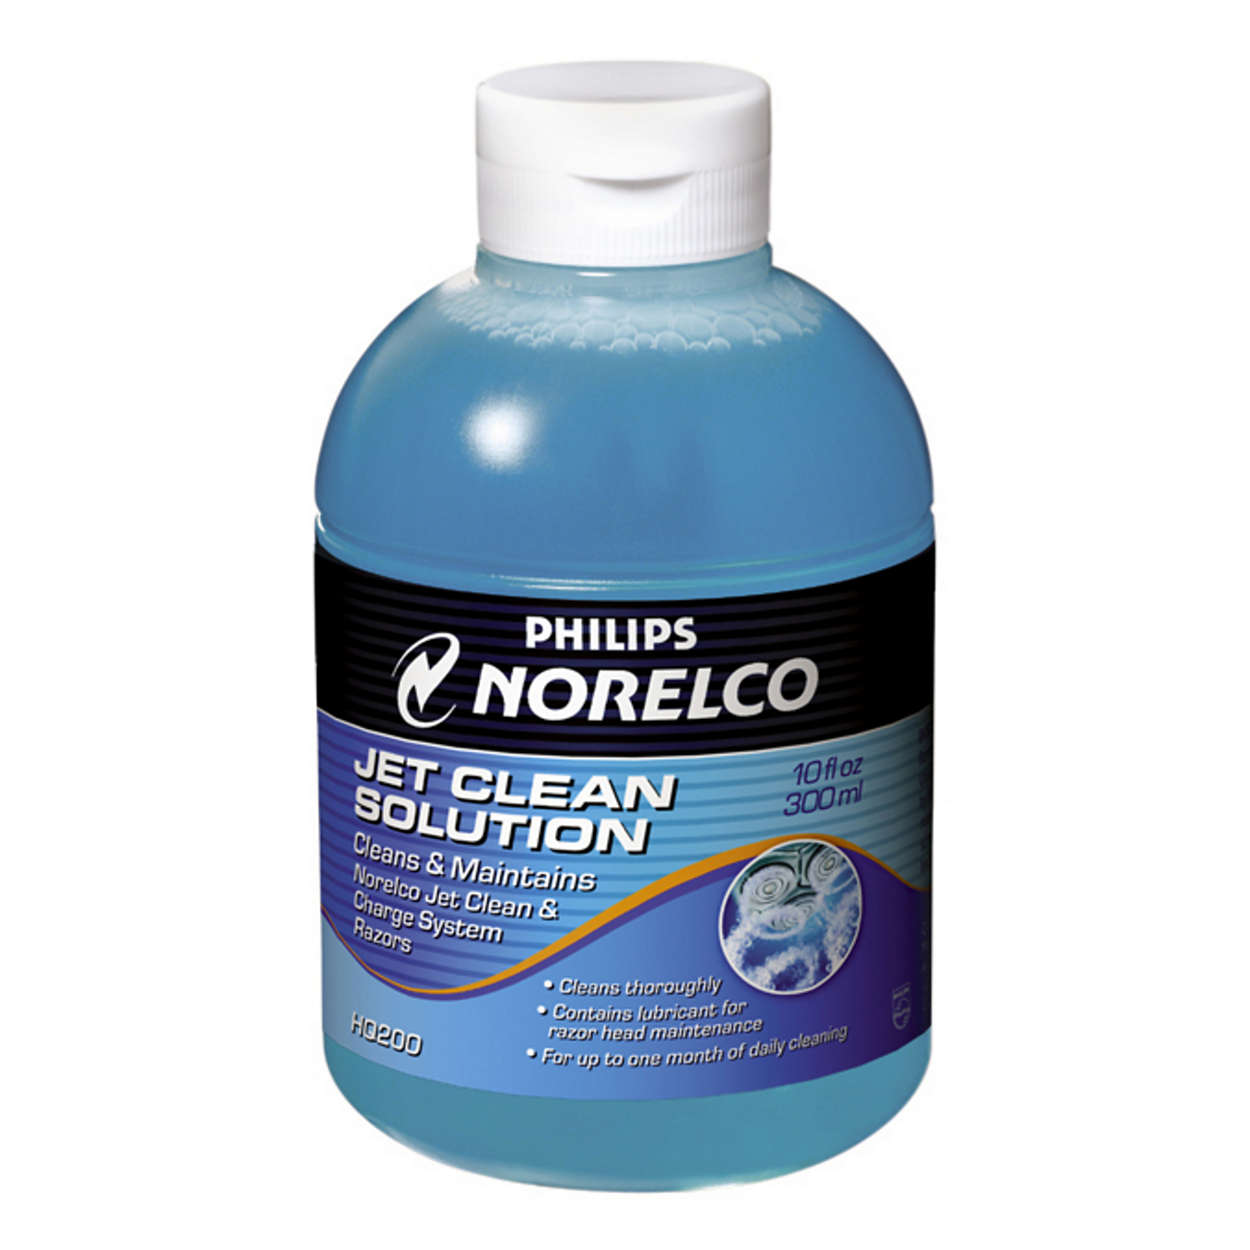 Cleans and lubricates